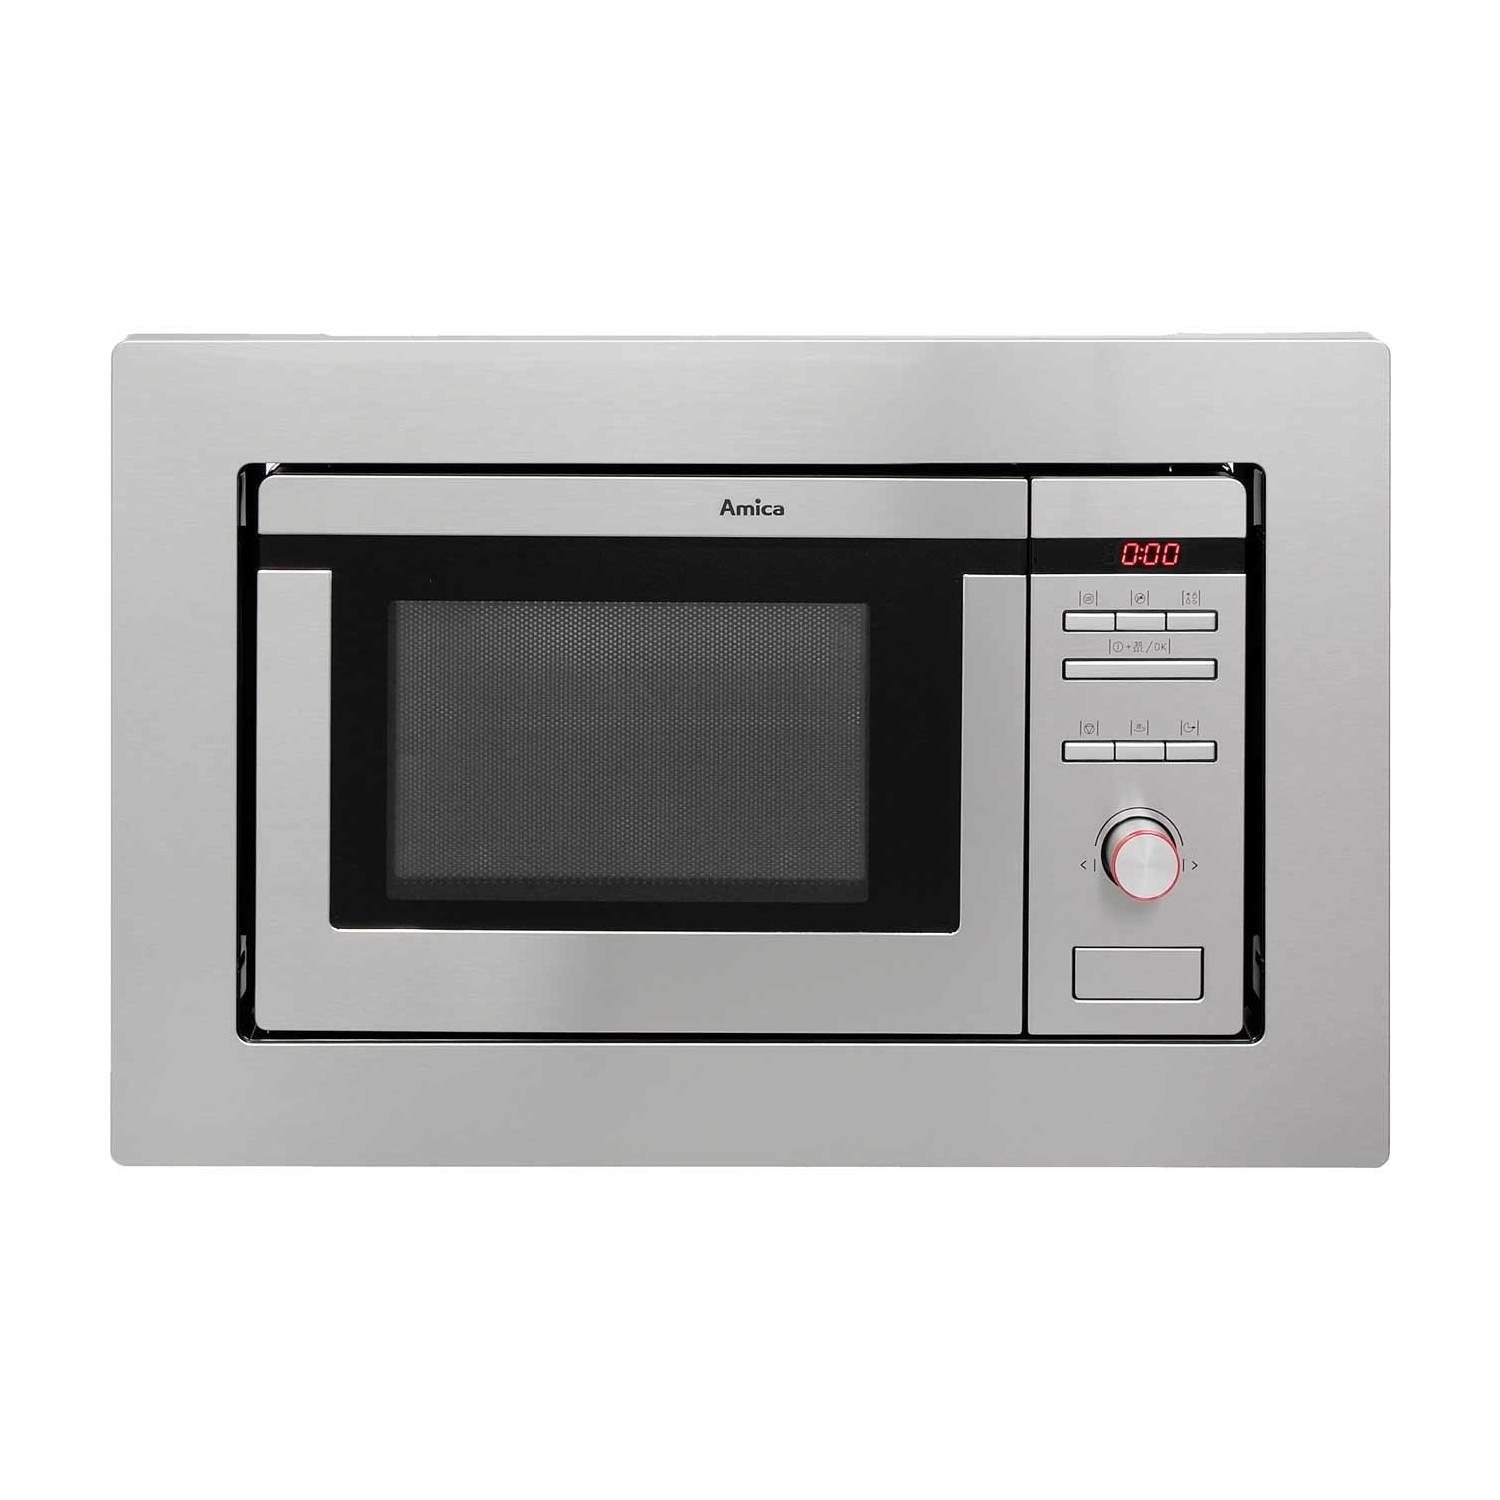 Amica 800W 20L Built-in Microwave with Grill - Stainless Steel AMM20G1BI